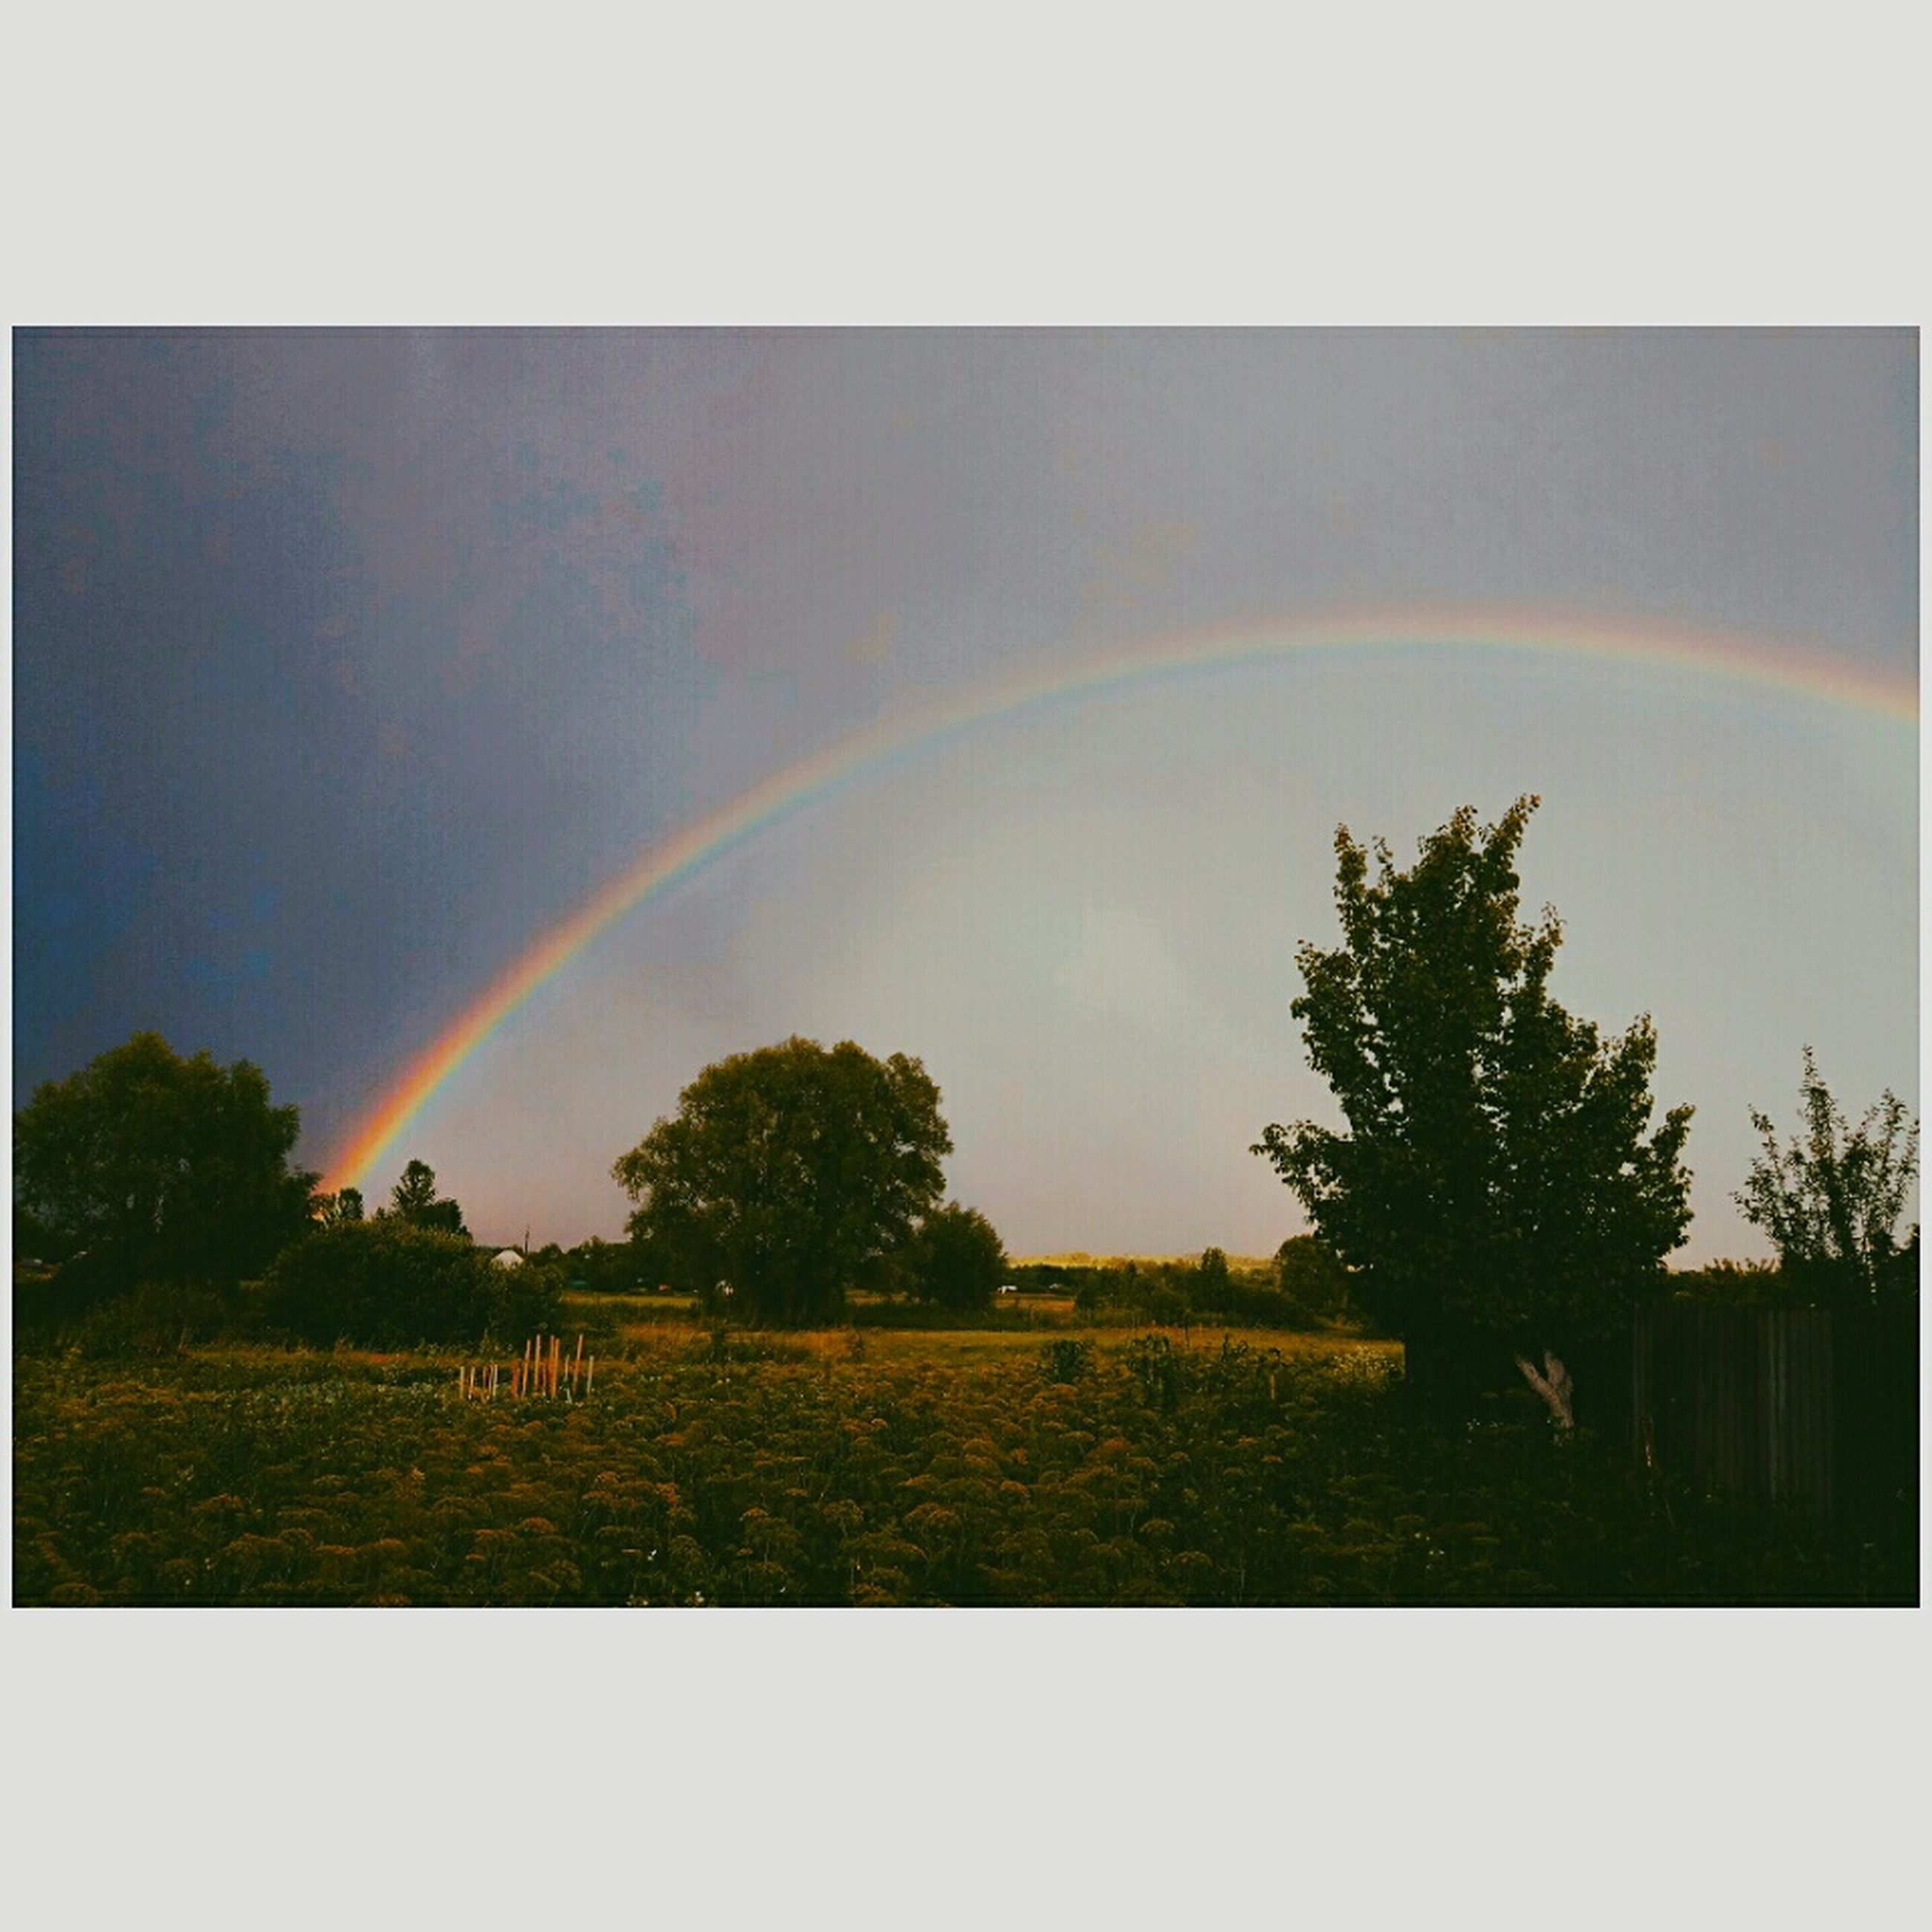 rainbow, double rainbow, scenics, no people, tree, beauty in nature, day, tranquility, idyllic, tranquil scene, outdoors, nature, multi colored, spectrum, architecture, sky